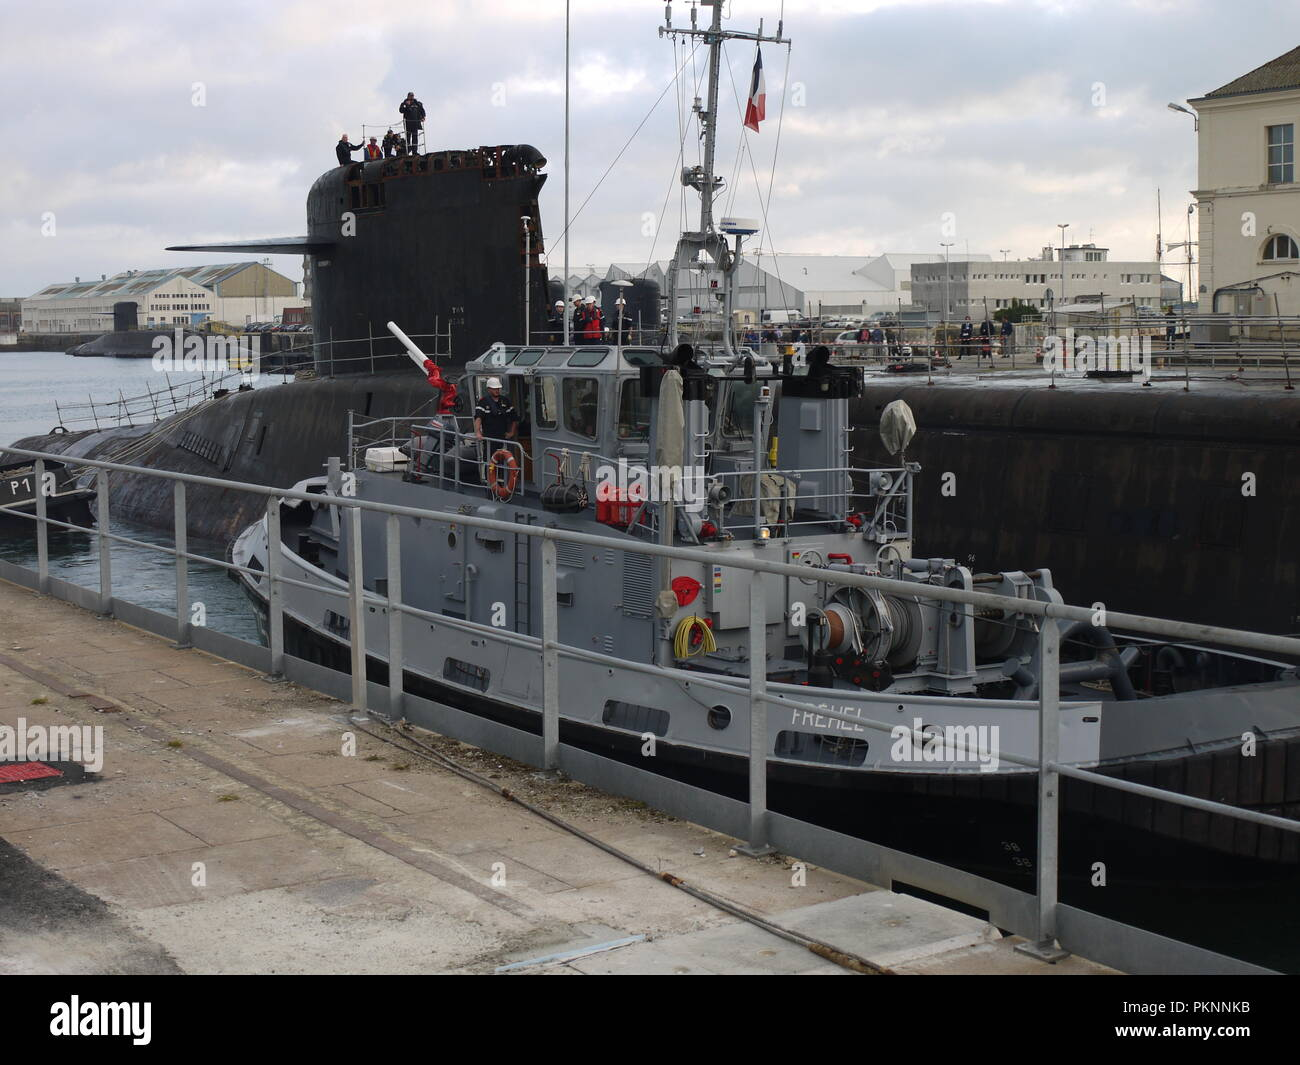 French nuclear submarine missile launcher Le Tonnant before deconstruction in Cherbourg (Normandy) - Stock Image